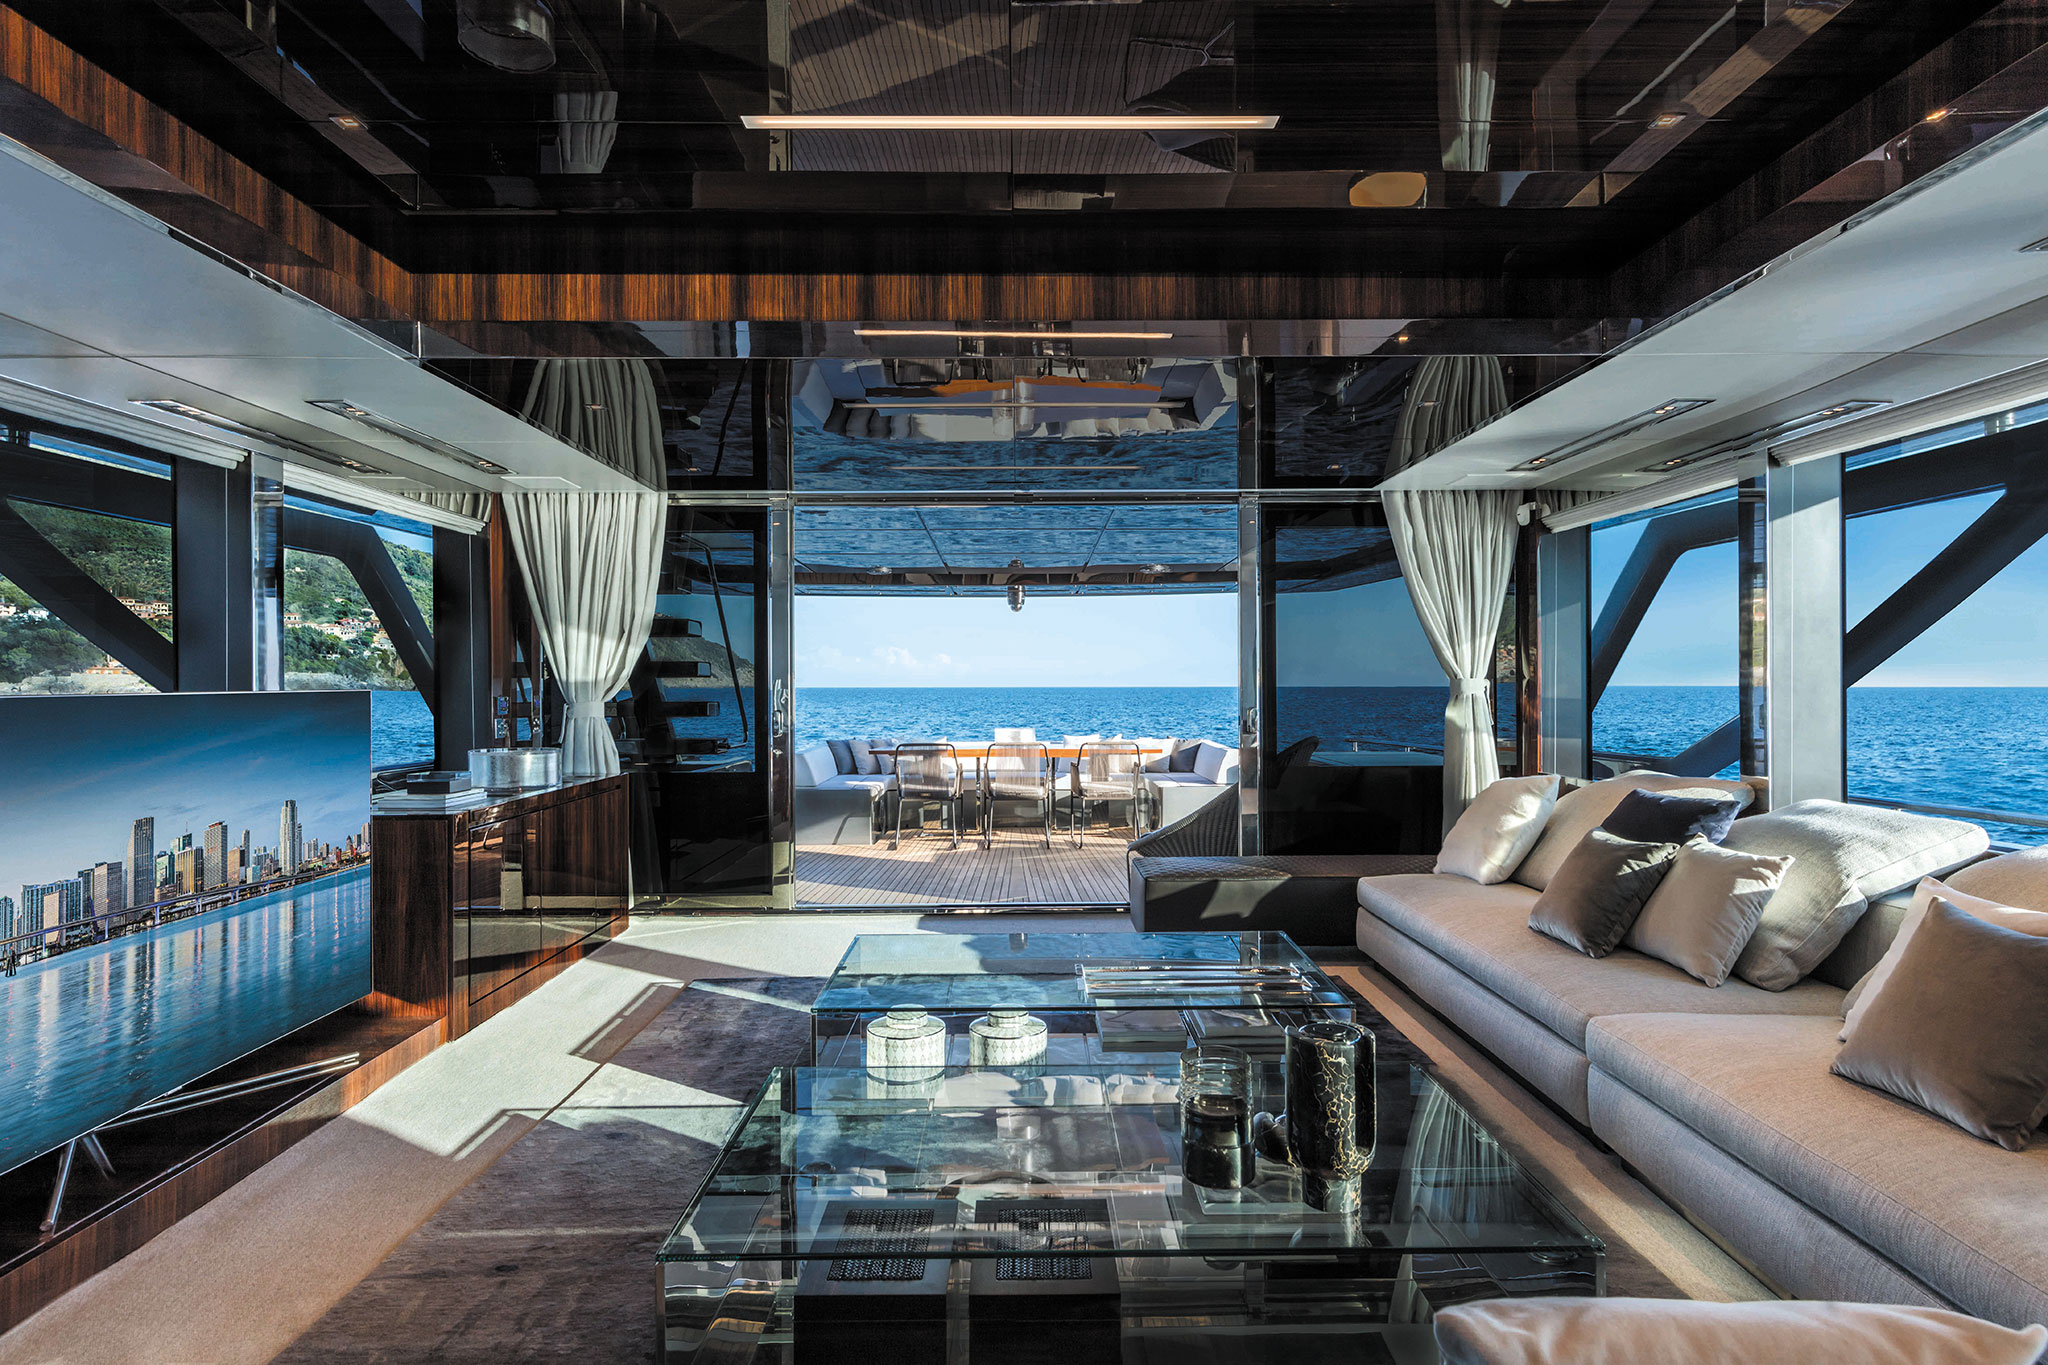 Riva-110-Dolcevita-Yachts-France-171-Interiors-14